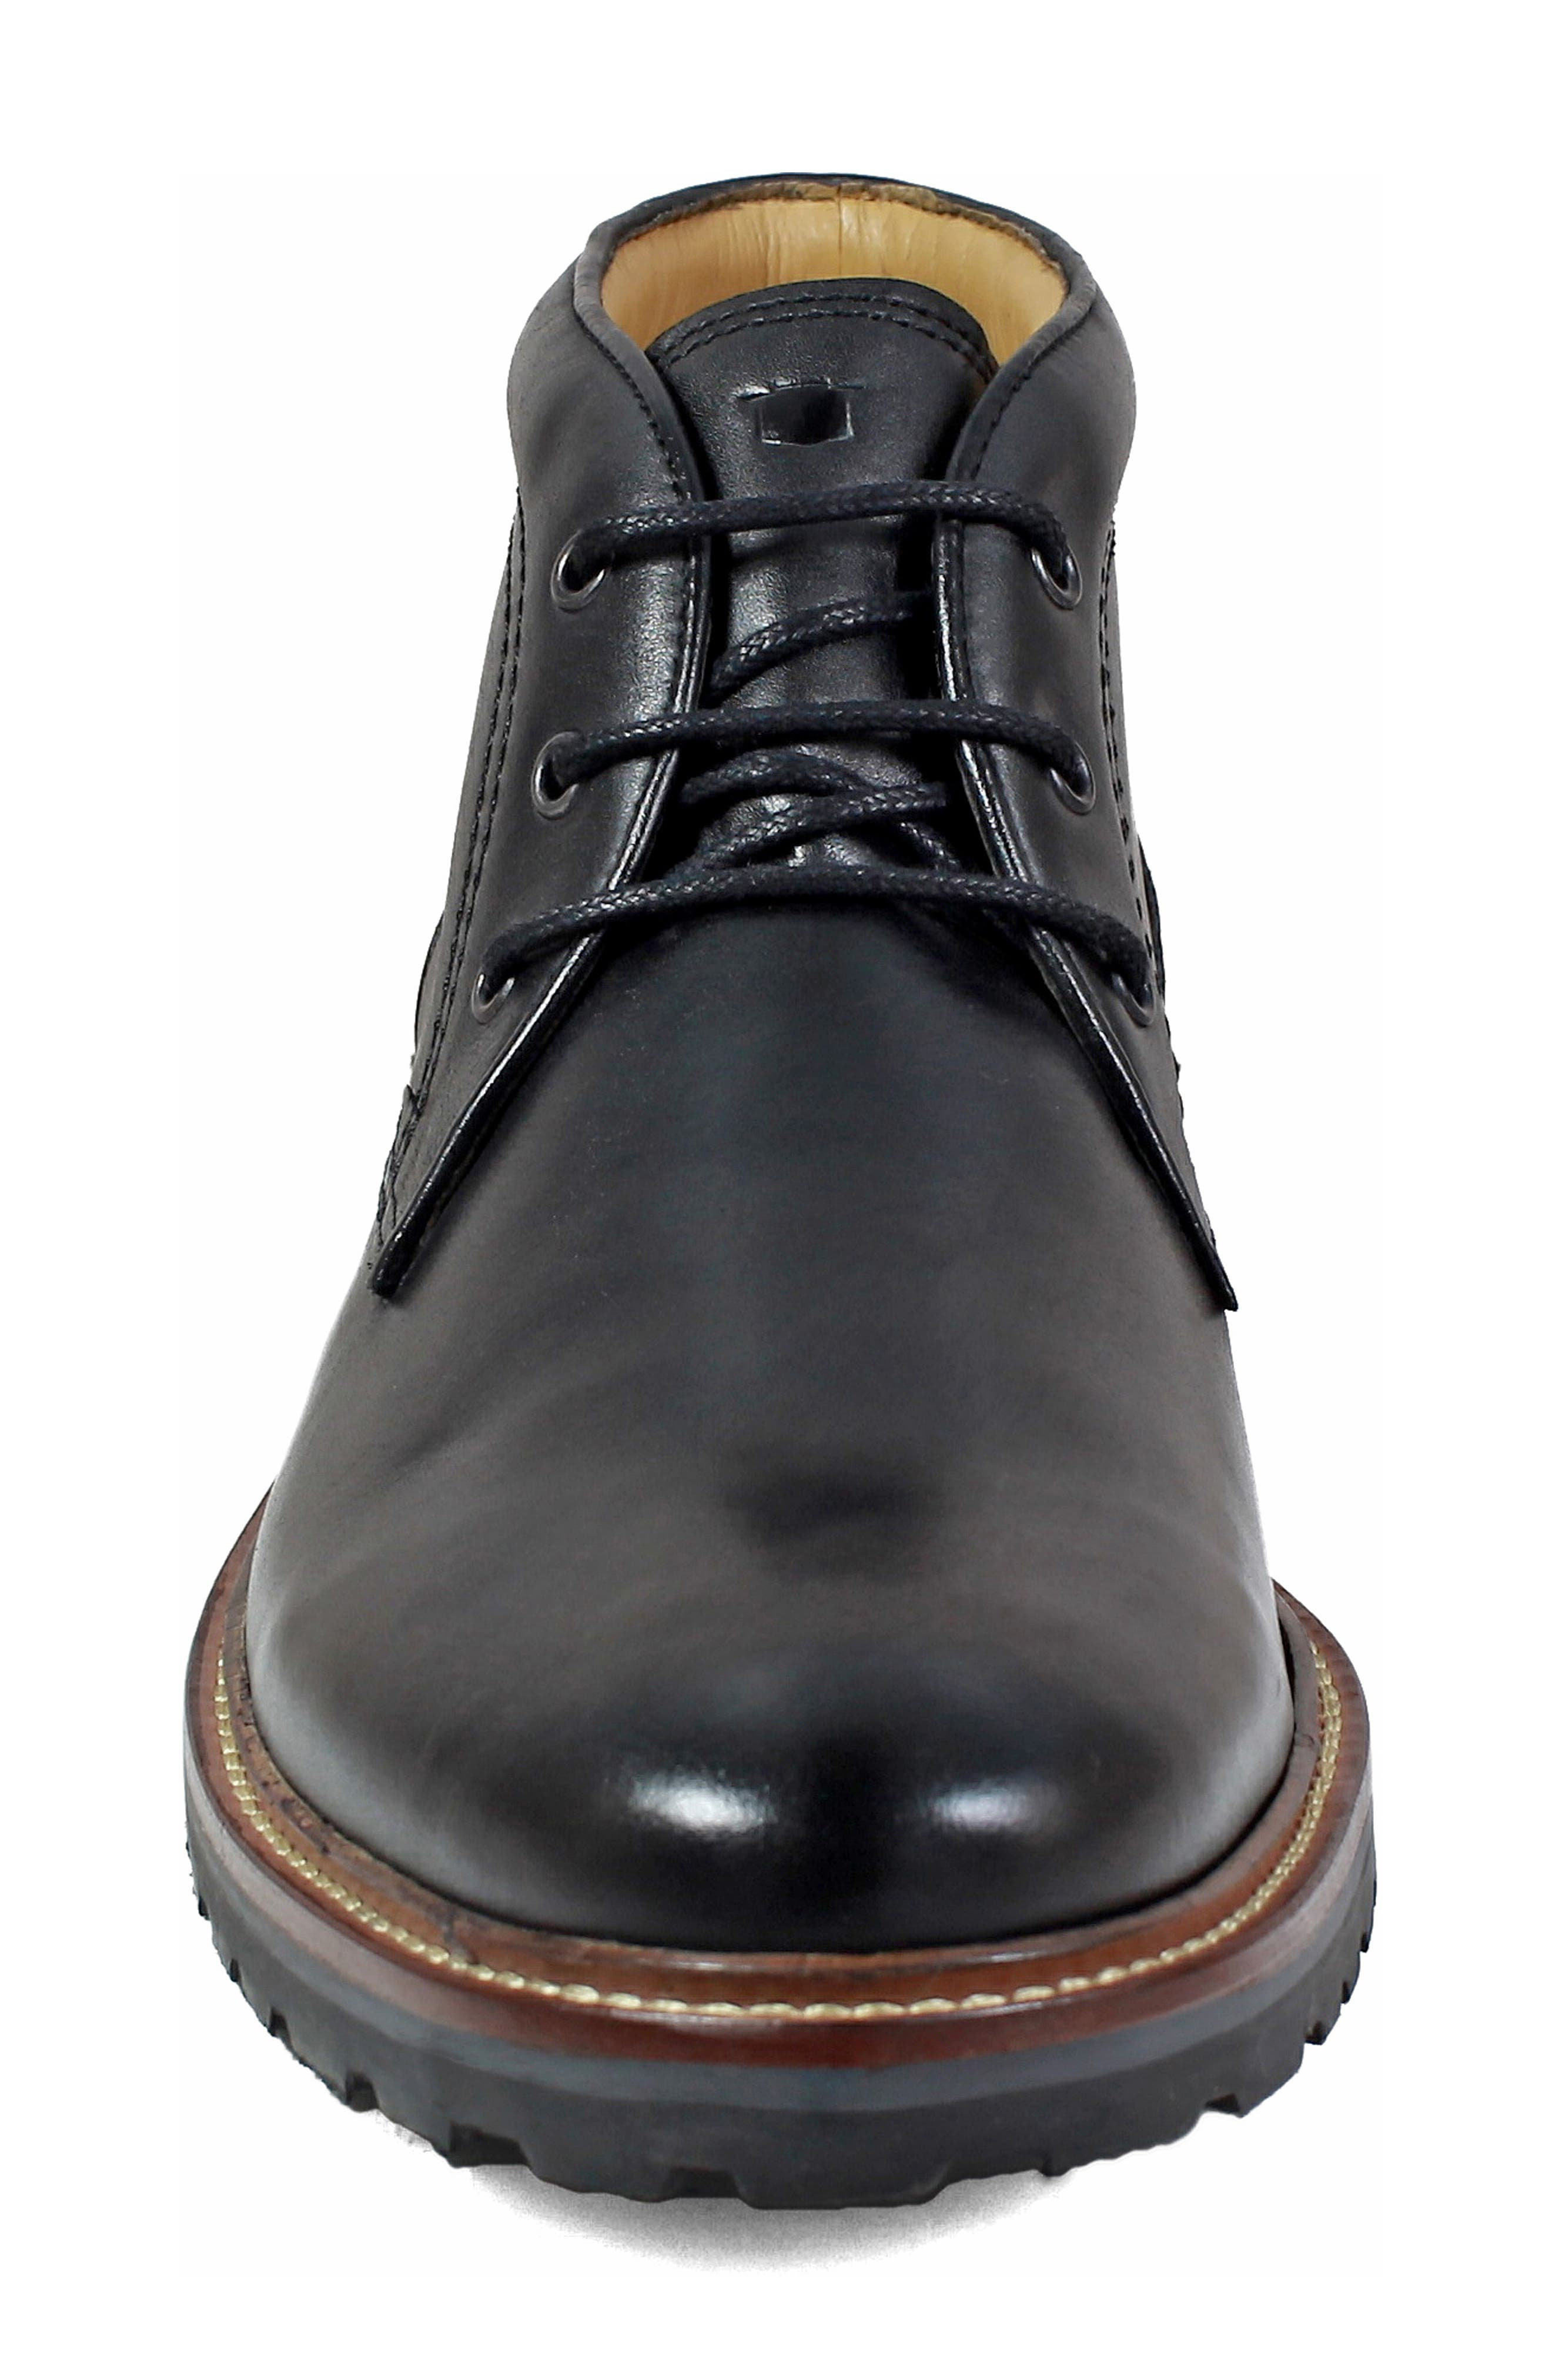 Estabrook Lugged Chukka Boot,                             Alternate thumbnail 4, color,                             BLACK LEATHER